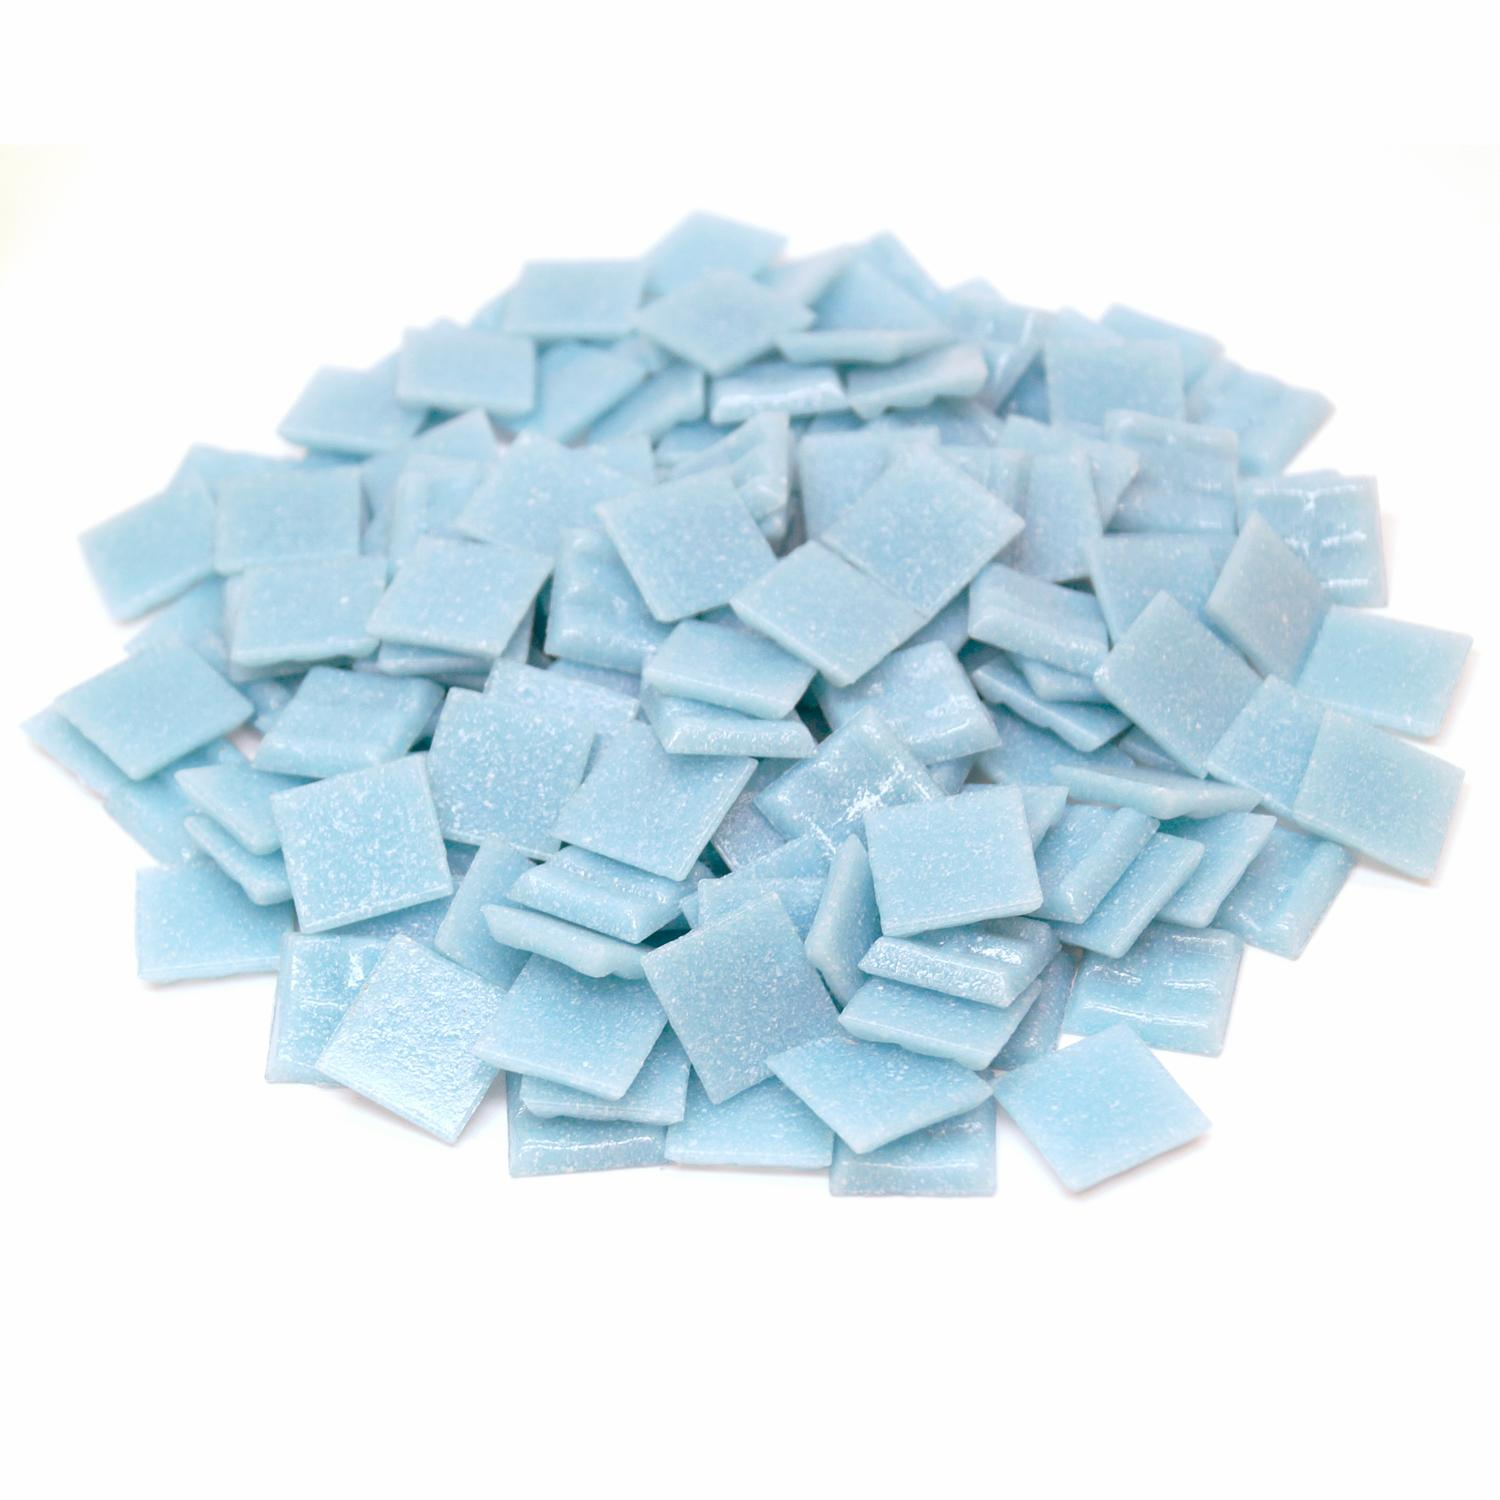 3/4 Popsicle Glass Tile - 1 lb